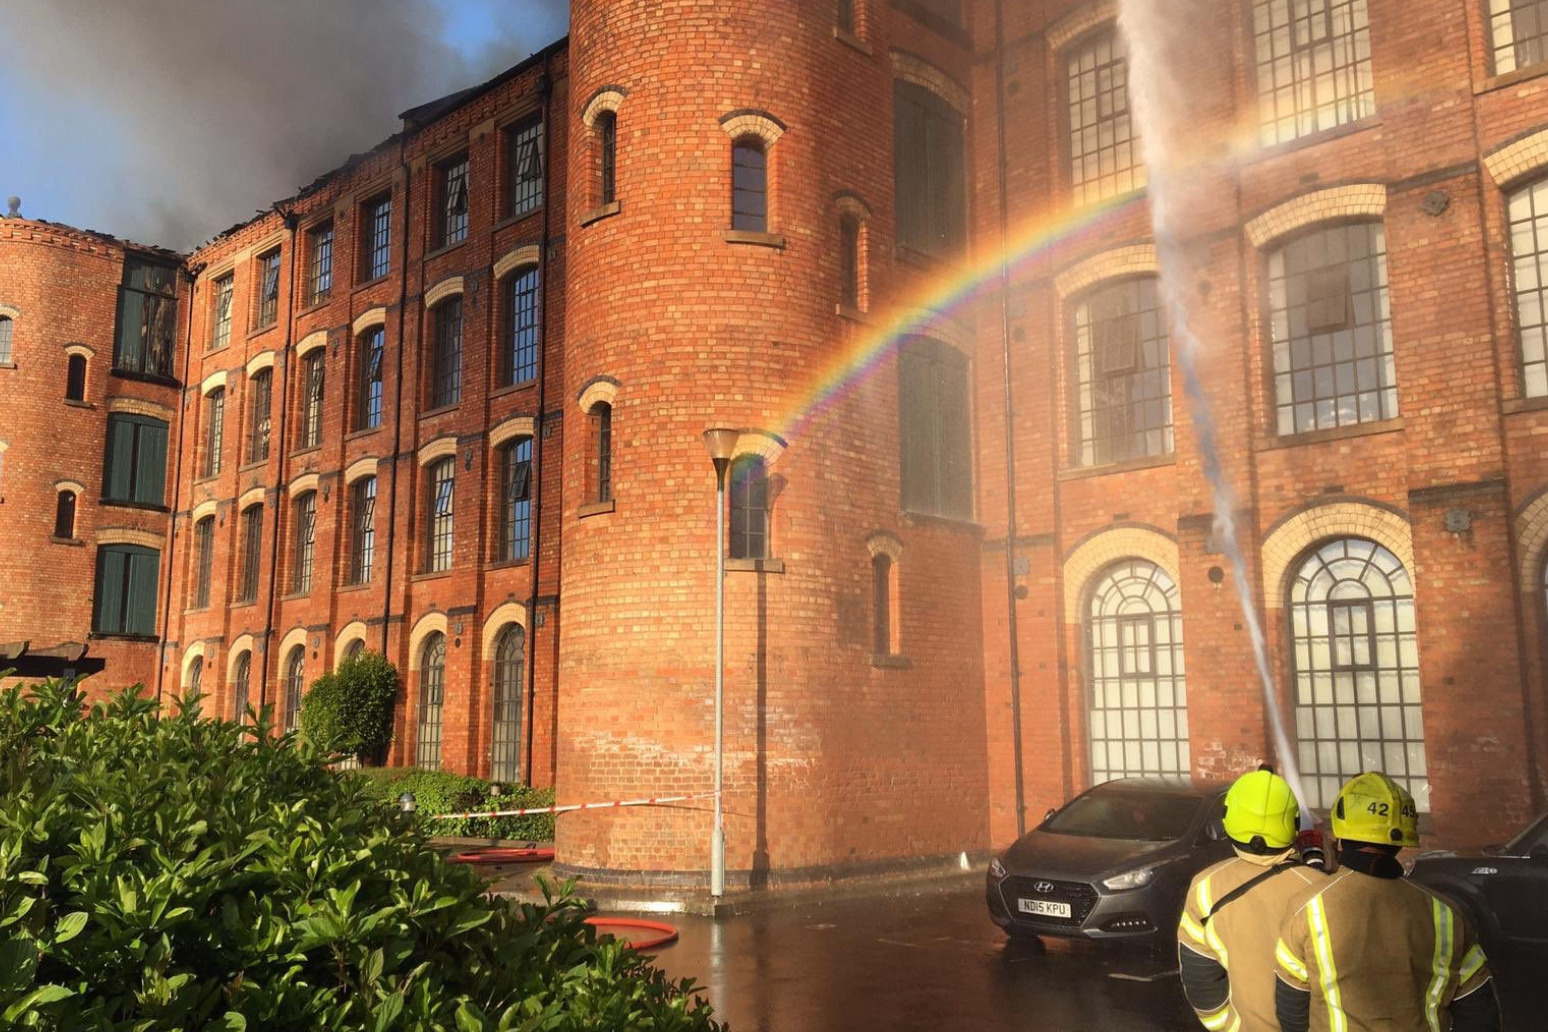 Firefighters tackle blaze at block of flats in Nottingham